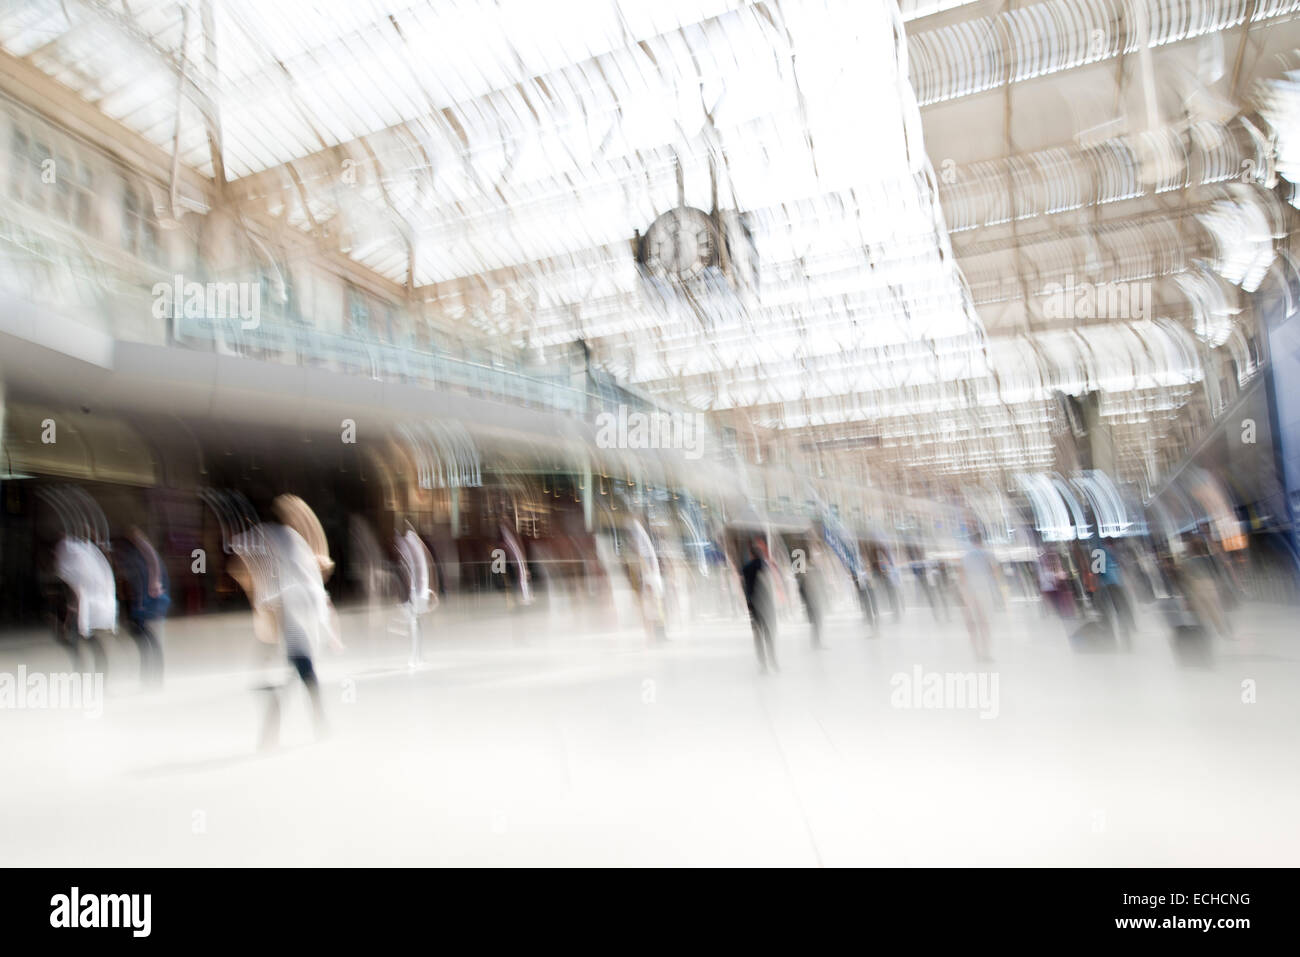 Waterloo Station in rush hour with motion blur - Stock Image